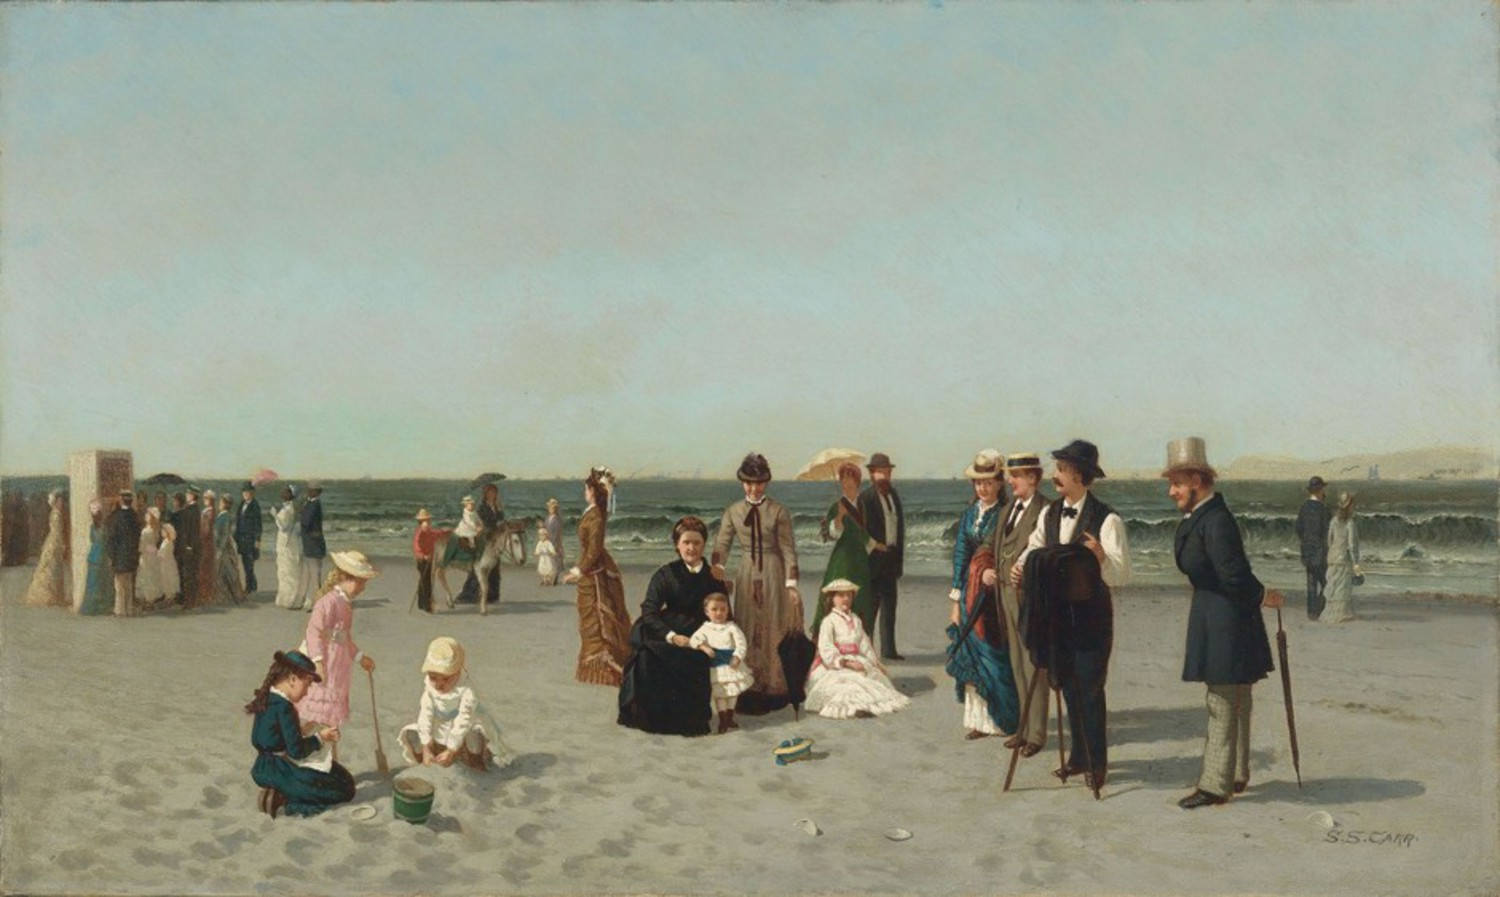 Samuel S. Carr, Beach Scene, c. 1879, oil on canvas, Smith College Museum of Art, Northampton, Massachusetts, Bequest of Annie Swan Coburn (Mrs. Lewis Larned Coburn)